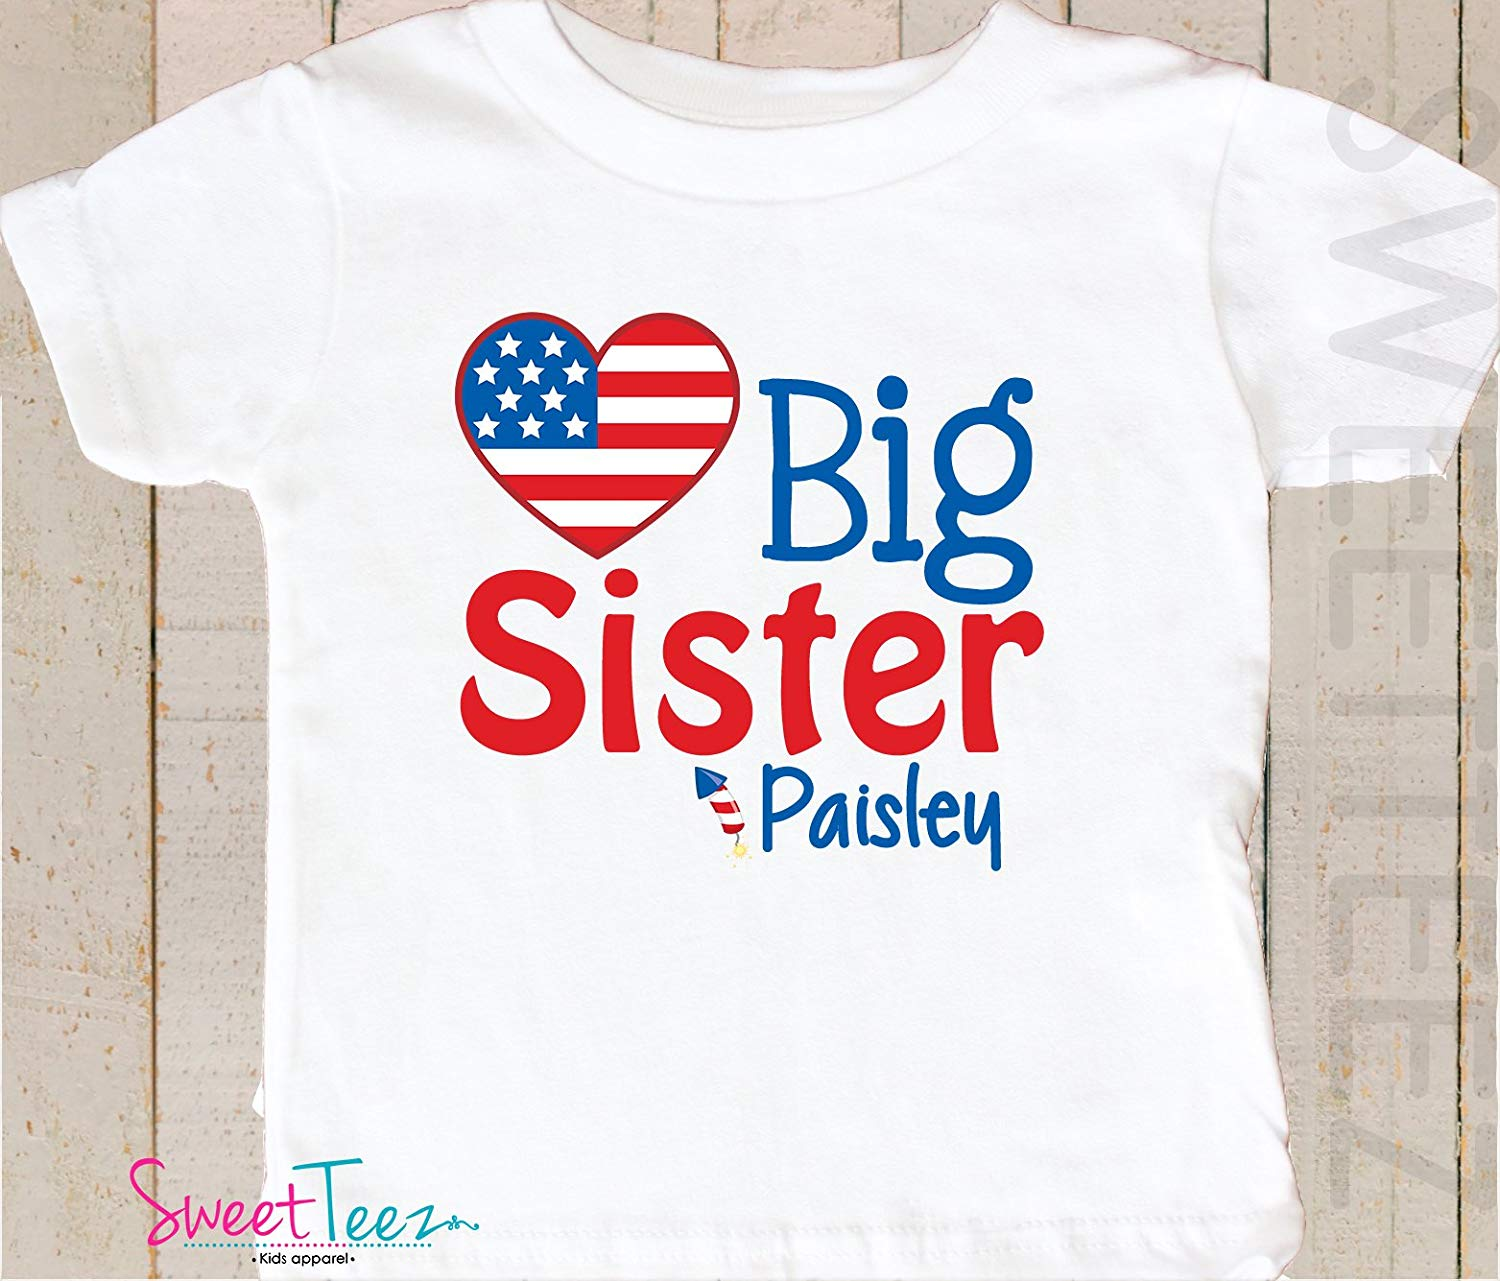 14aebce5d3d Get Quotations · Big Sister Shirt Personalized 4th Of July Shirt Girl  Pregnancy Announcement